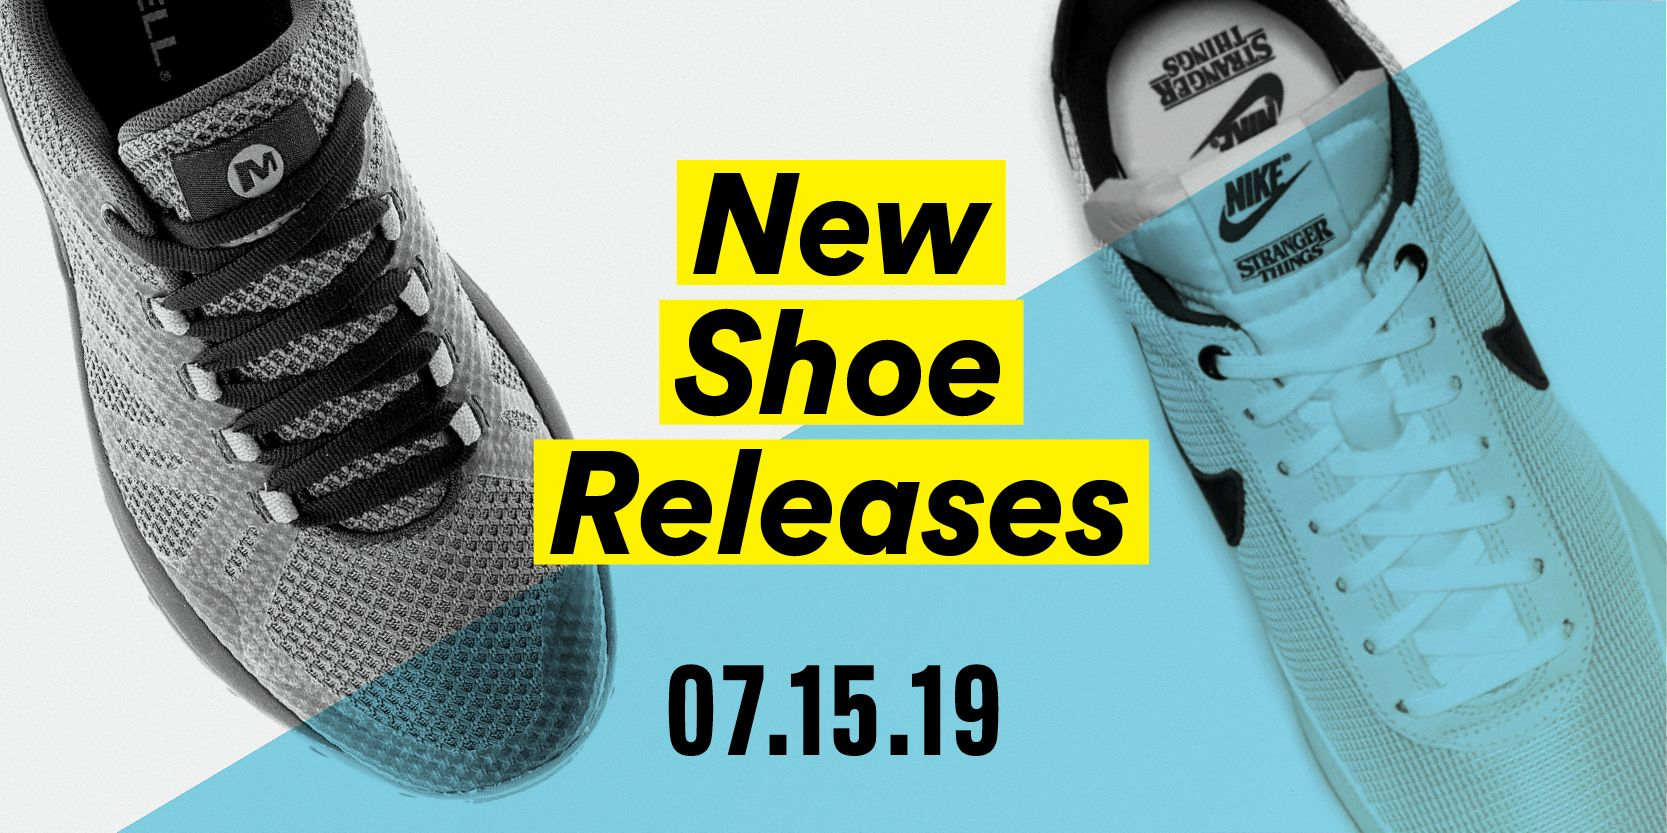 Best New Sneakers July 2019 Cool Sneakers Releases